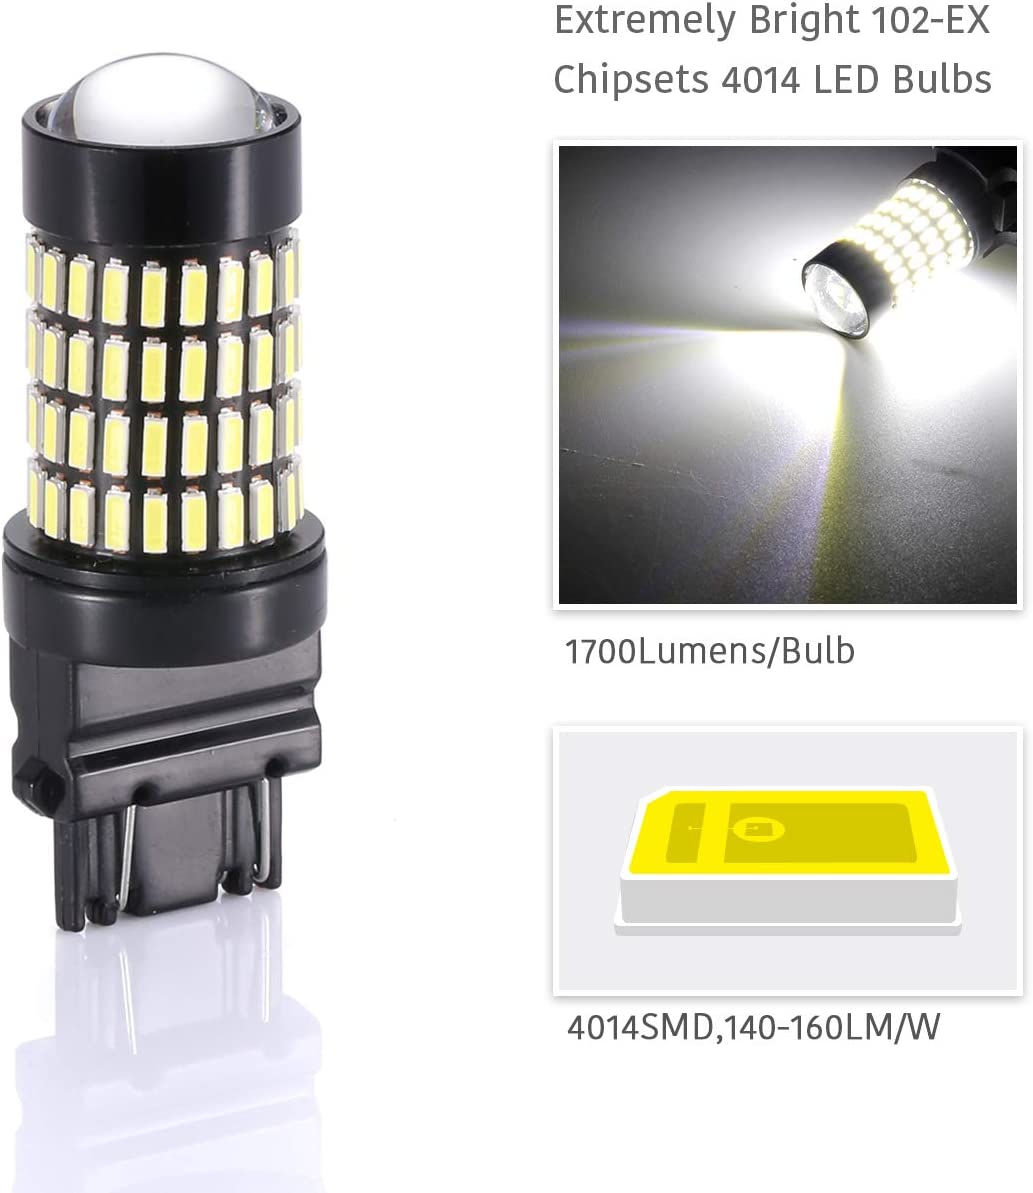 Brightest LED in market LUYED 2 X 1700 Lumens Extremely Bright ...